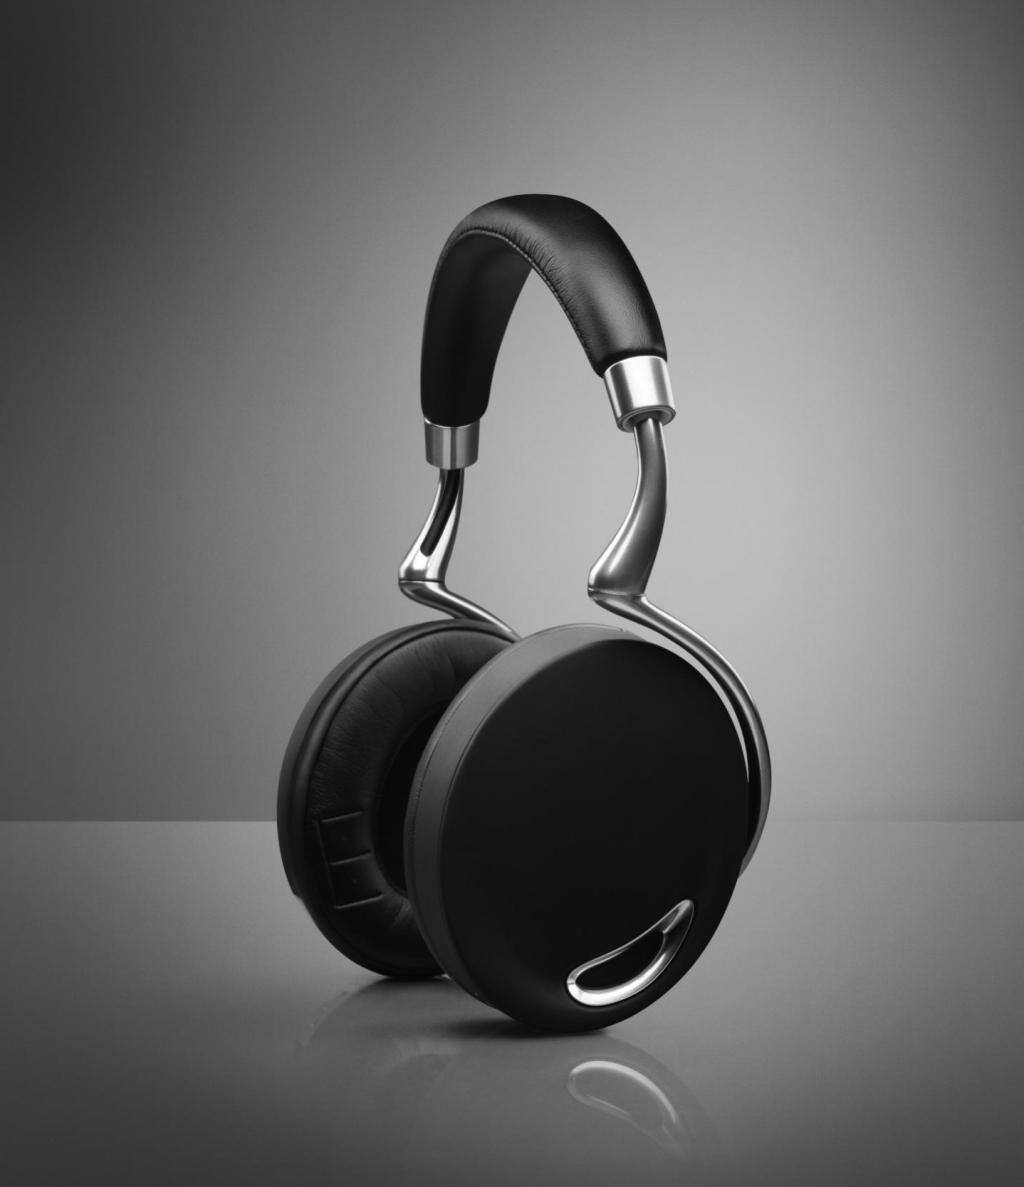 surplus-mag:  Zik Bluetooth Headphones For whatever reason, wireless Bluetooth headphones have never quite taken off, but we think that this new set from Parrot will change that. It has a sleek design, intuitive touch controls, and even knows to pause the music when you take them off your head. No information on its release date yet, but we'll be at the front of the line when it's finally available.  Zik Bluetooth Headphones, tof koptelefoontje!